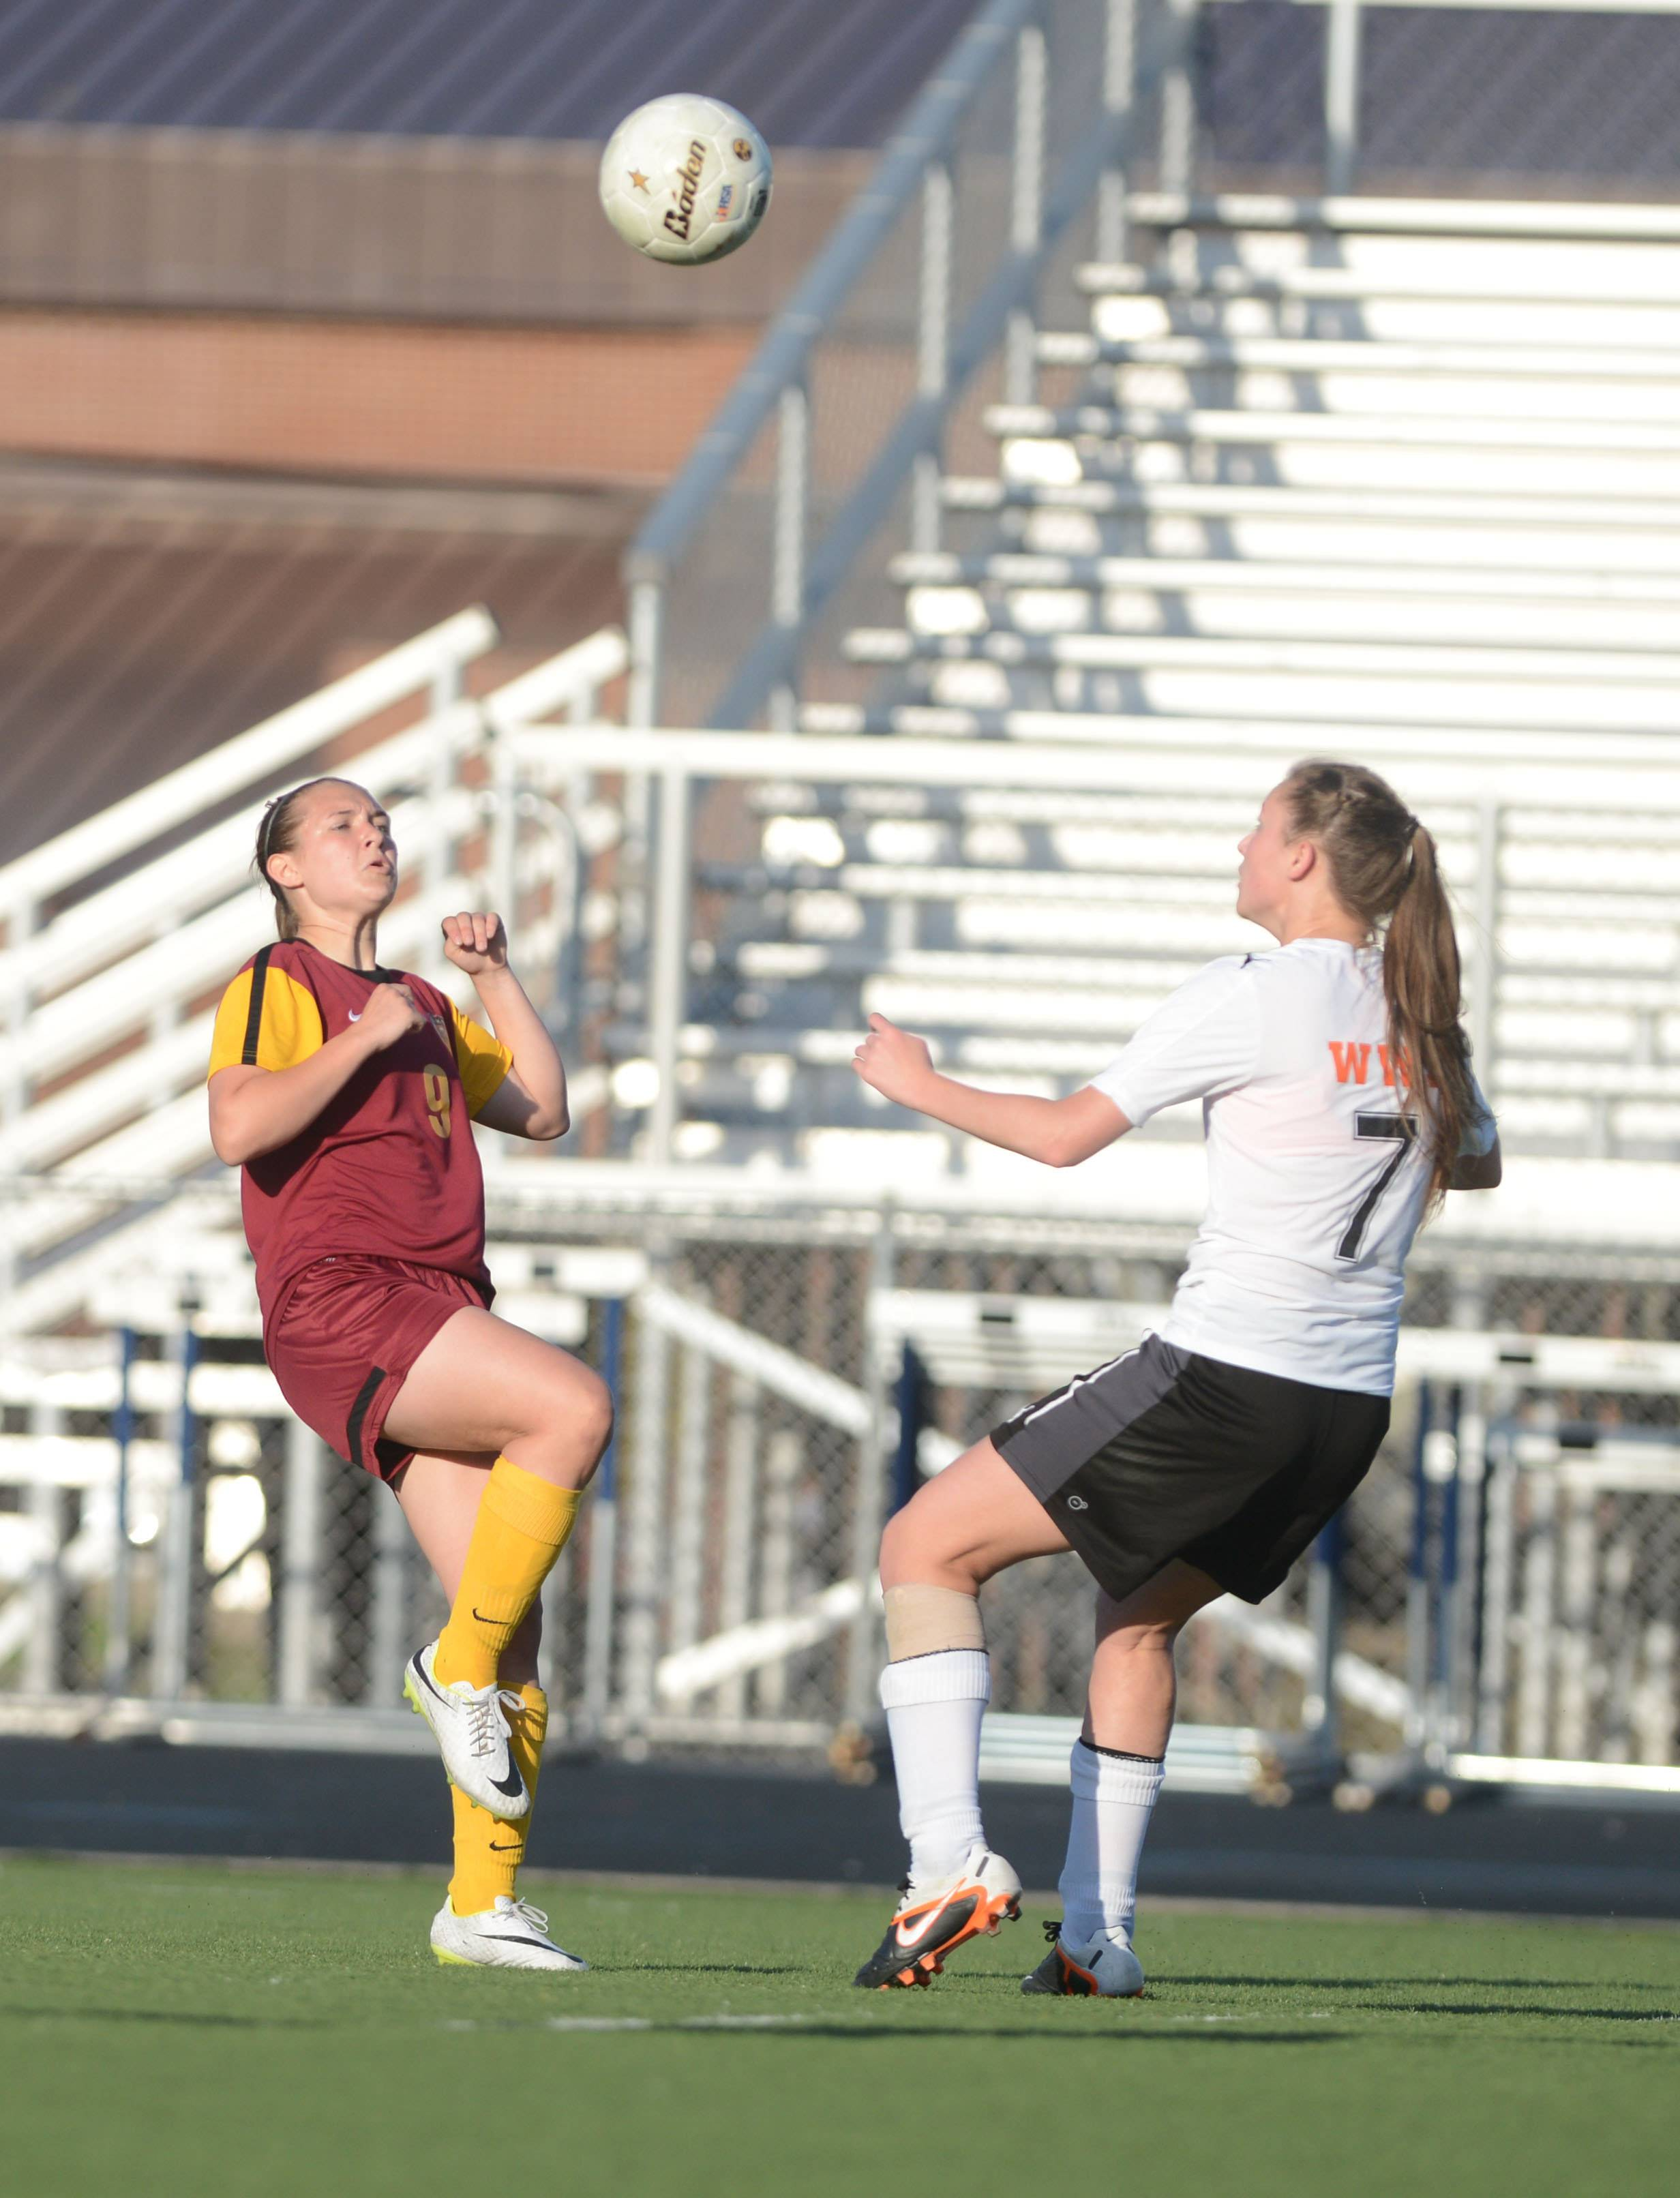 Paul Michna/pmichna@dailyherald.com#9 of Schaumburg (not on roster) and #7 Alexis Jakuszewski go for a head shot during the Wheaton Warrenville South vs. Schaumburg girls soccer at West Chicago regional semifinal game.